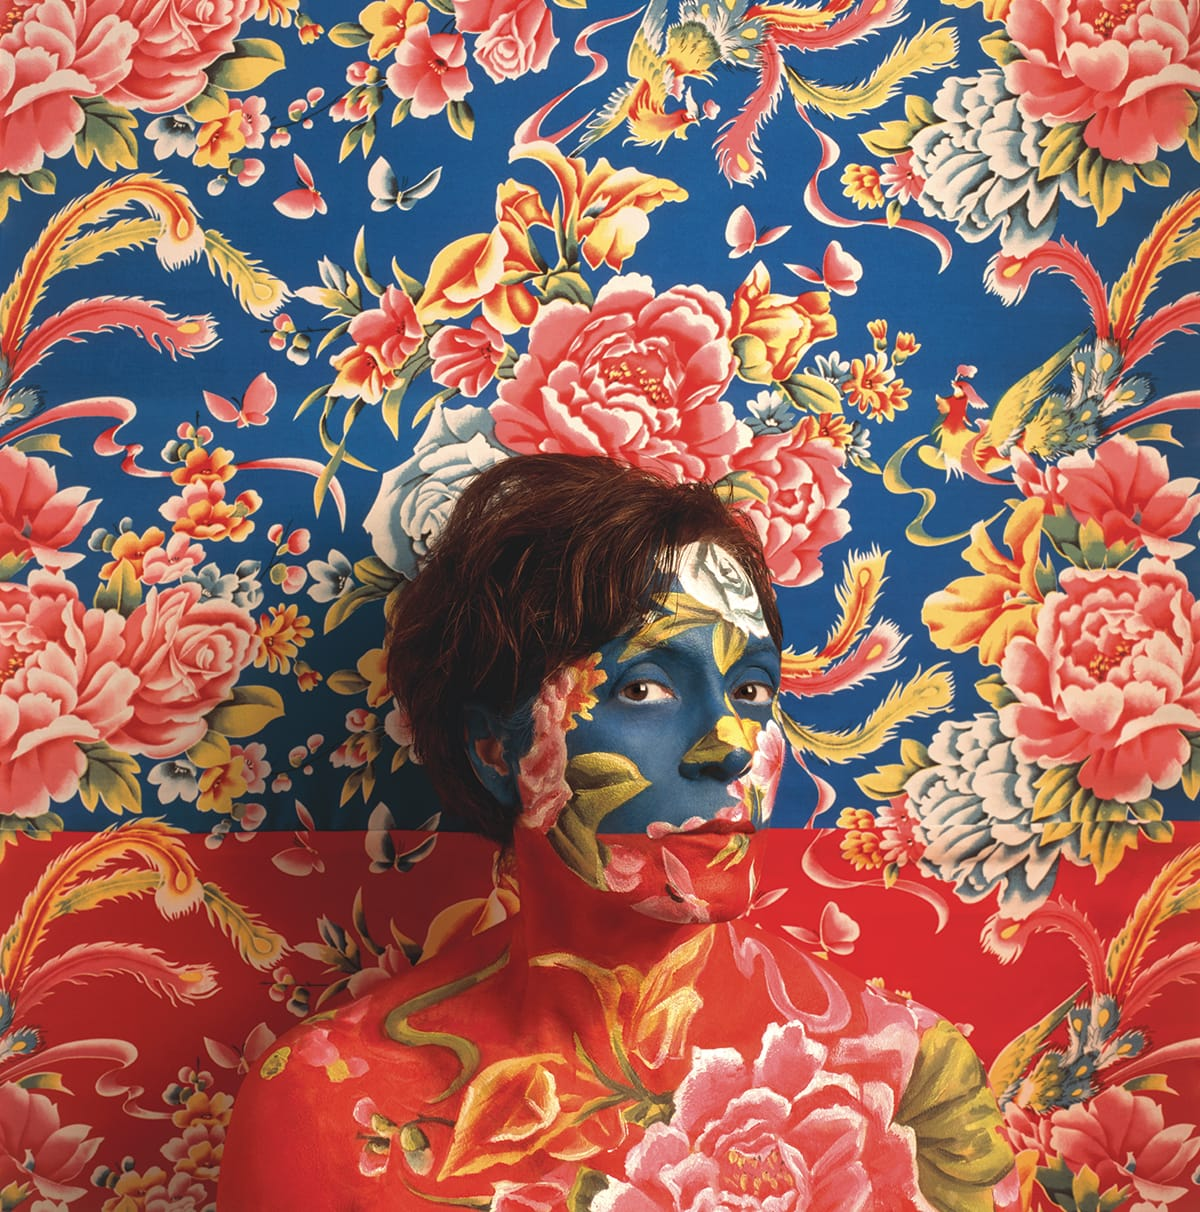 A woman standing in front of a floral wall. Her face is painted to match the floral pattern.